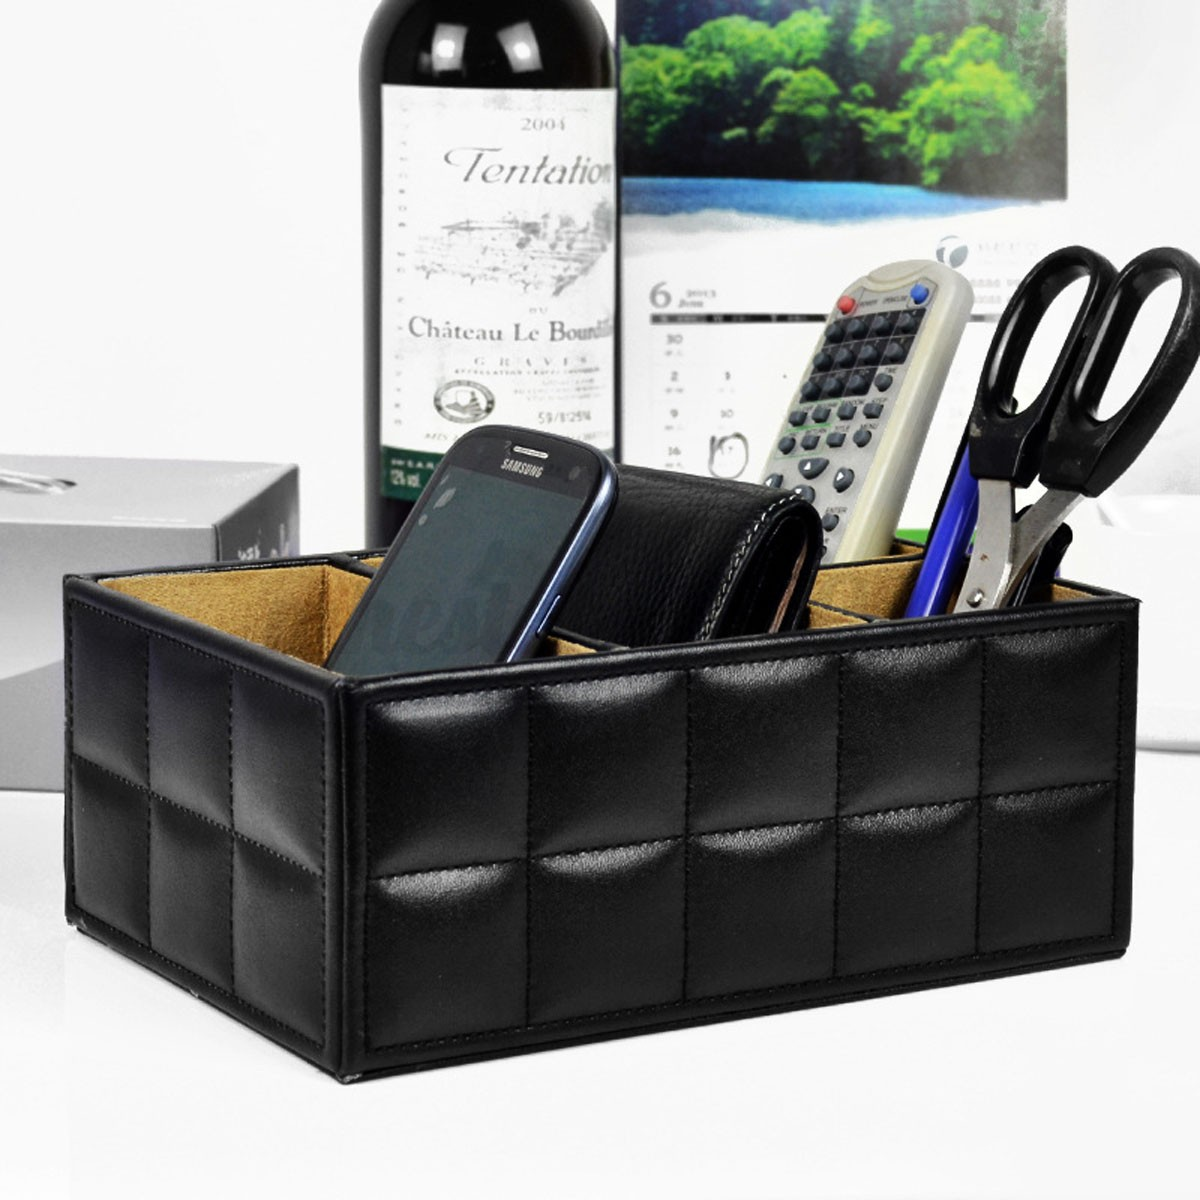 PU Leather Storage Box Desk Tidy Organizer Holder for Remote Control/Phone/Pen